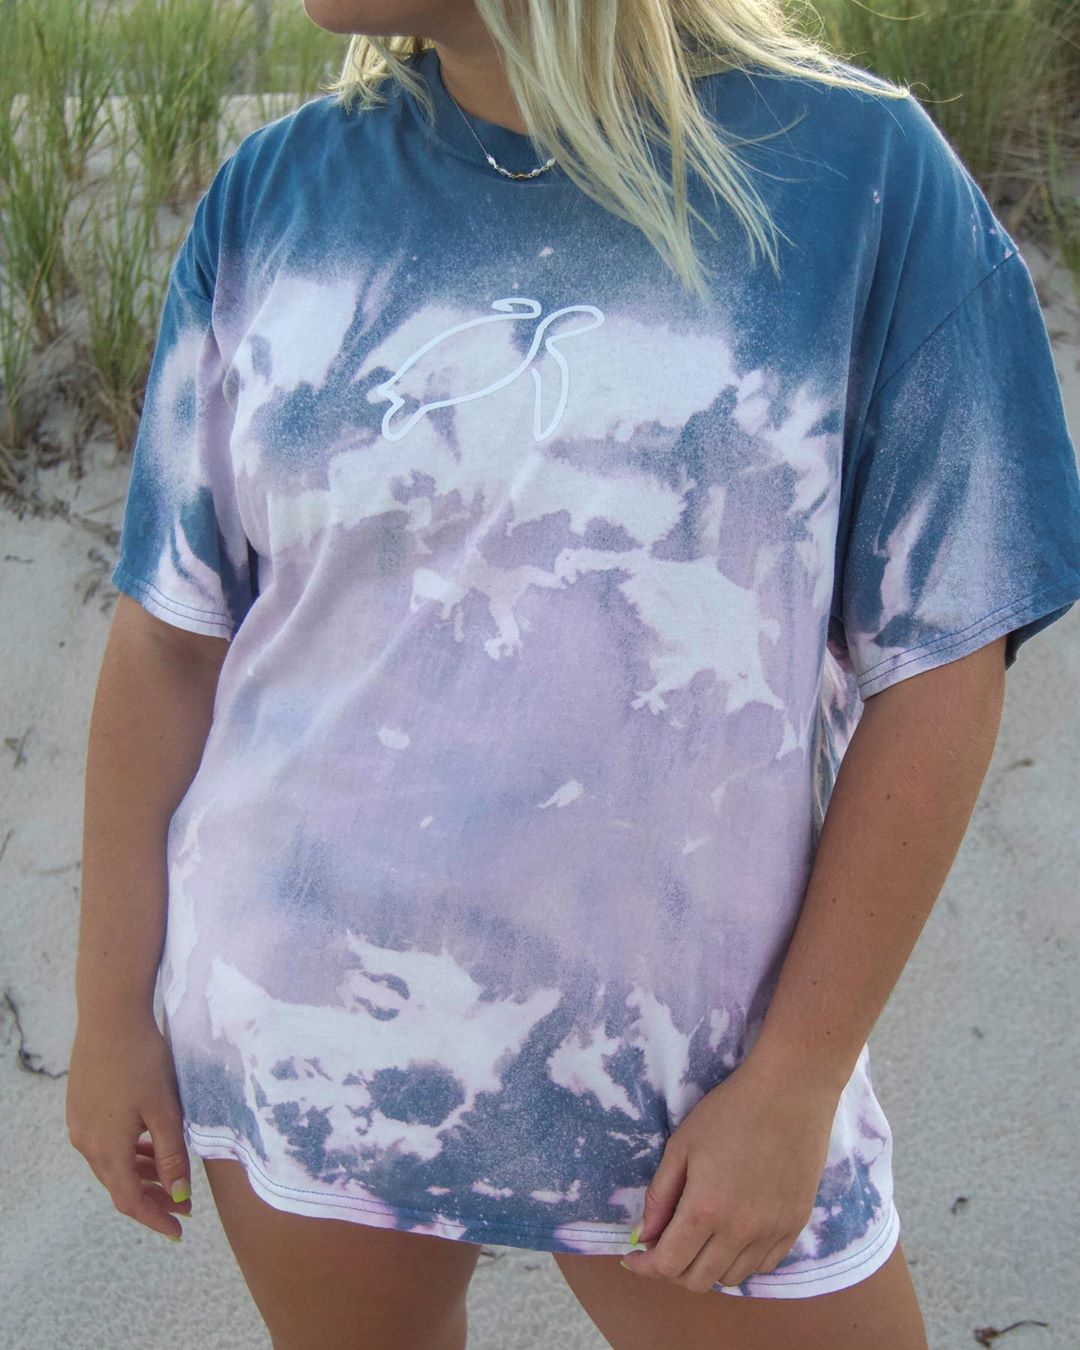 ⓉⓊⓇⓉⓁⒺ ⓉⒾⒺⒹⓎⒺ ②ⓍⓁ ⓉⒺⒺ Now Available! 30$ tie dye oversized coverup tee!  ⋄  ⋄  ⋄…